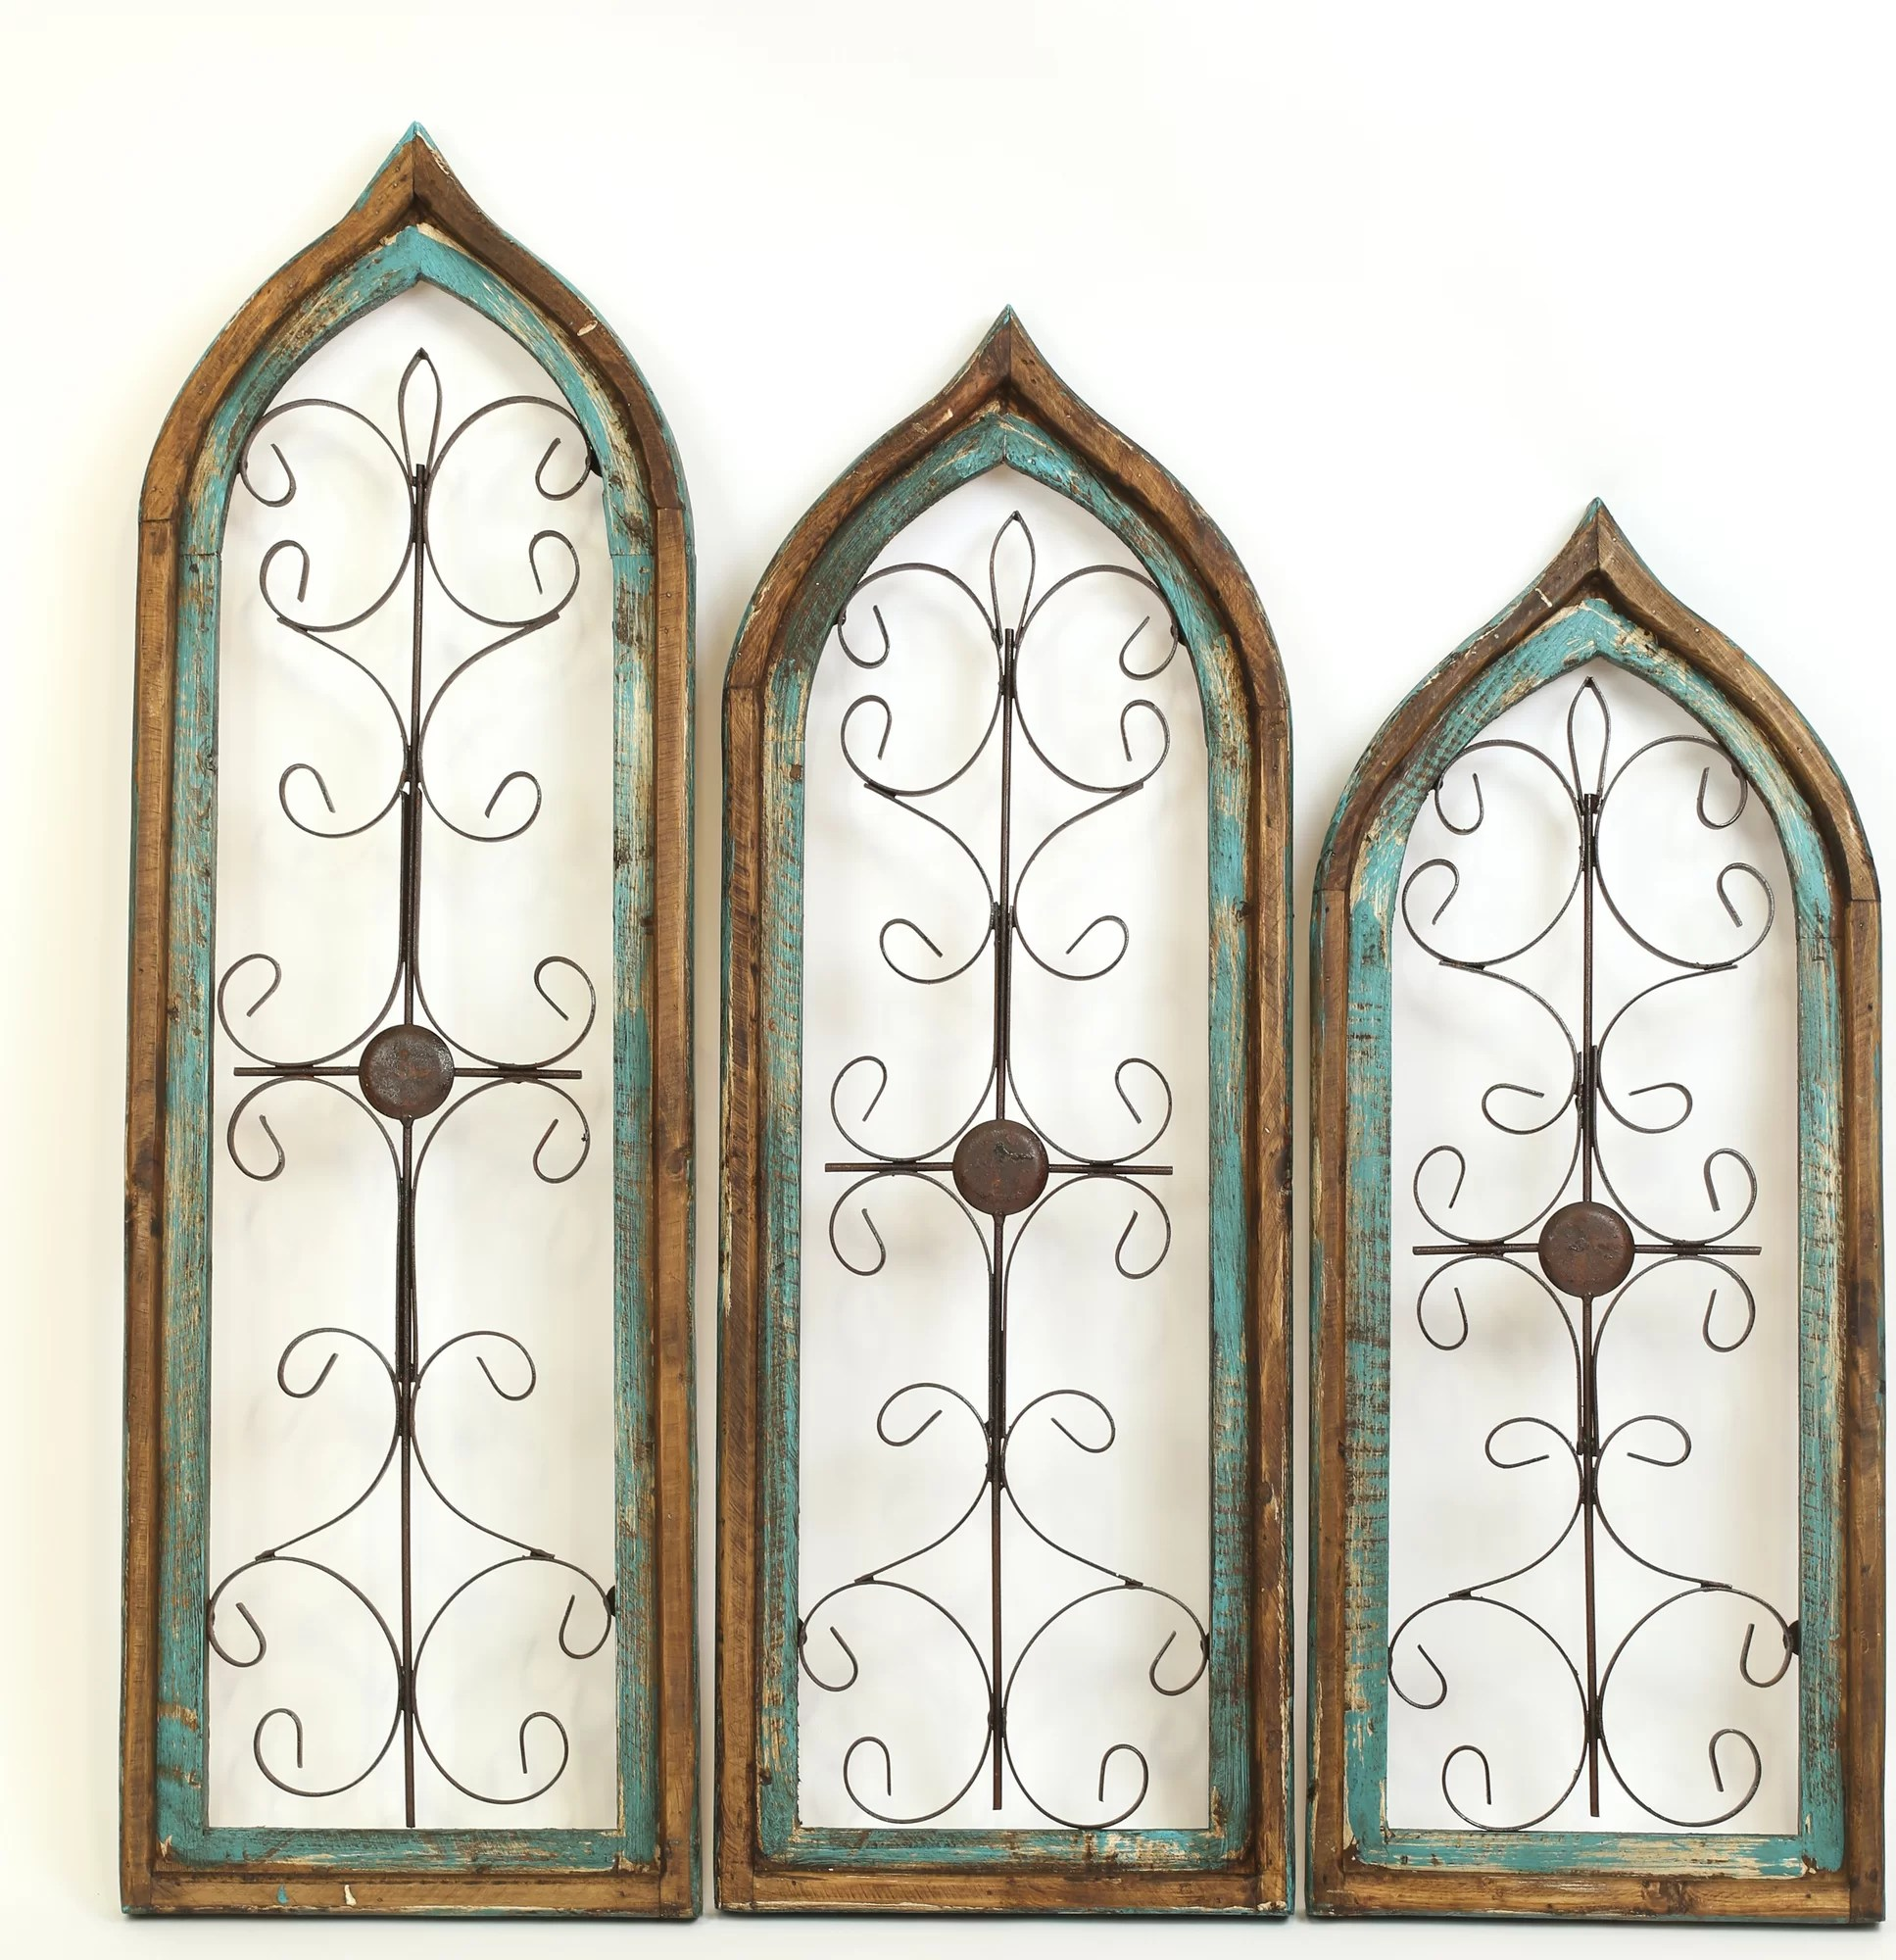 My Amigos Imports Gothic 3 Piece Architectural Window Wall